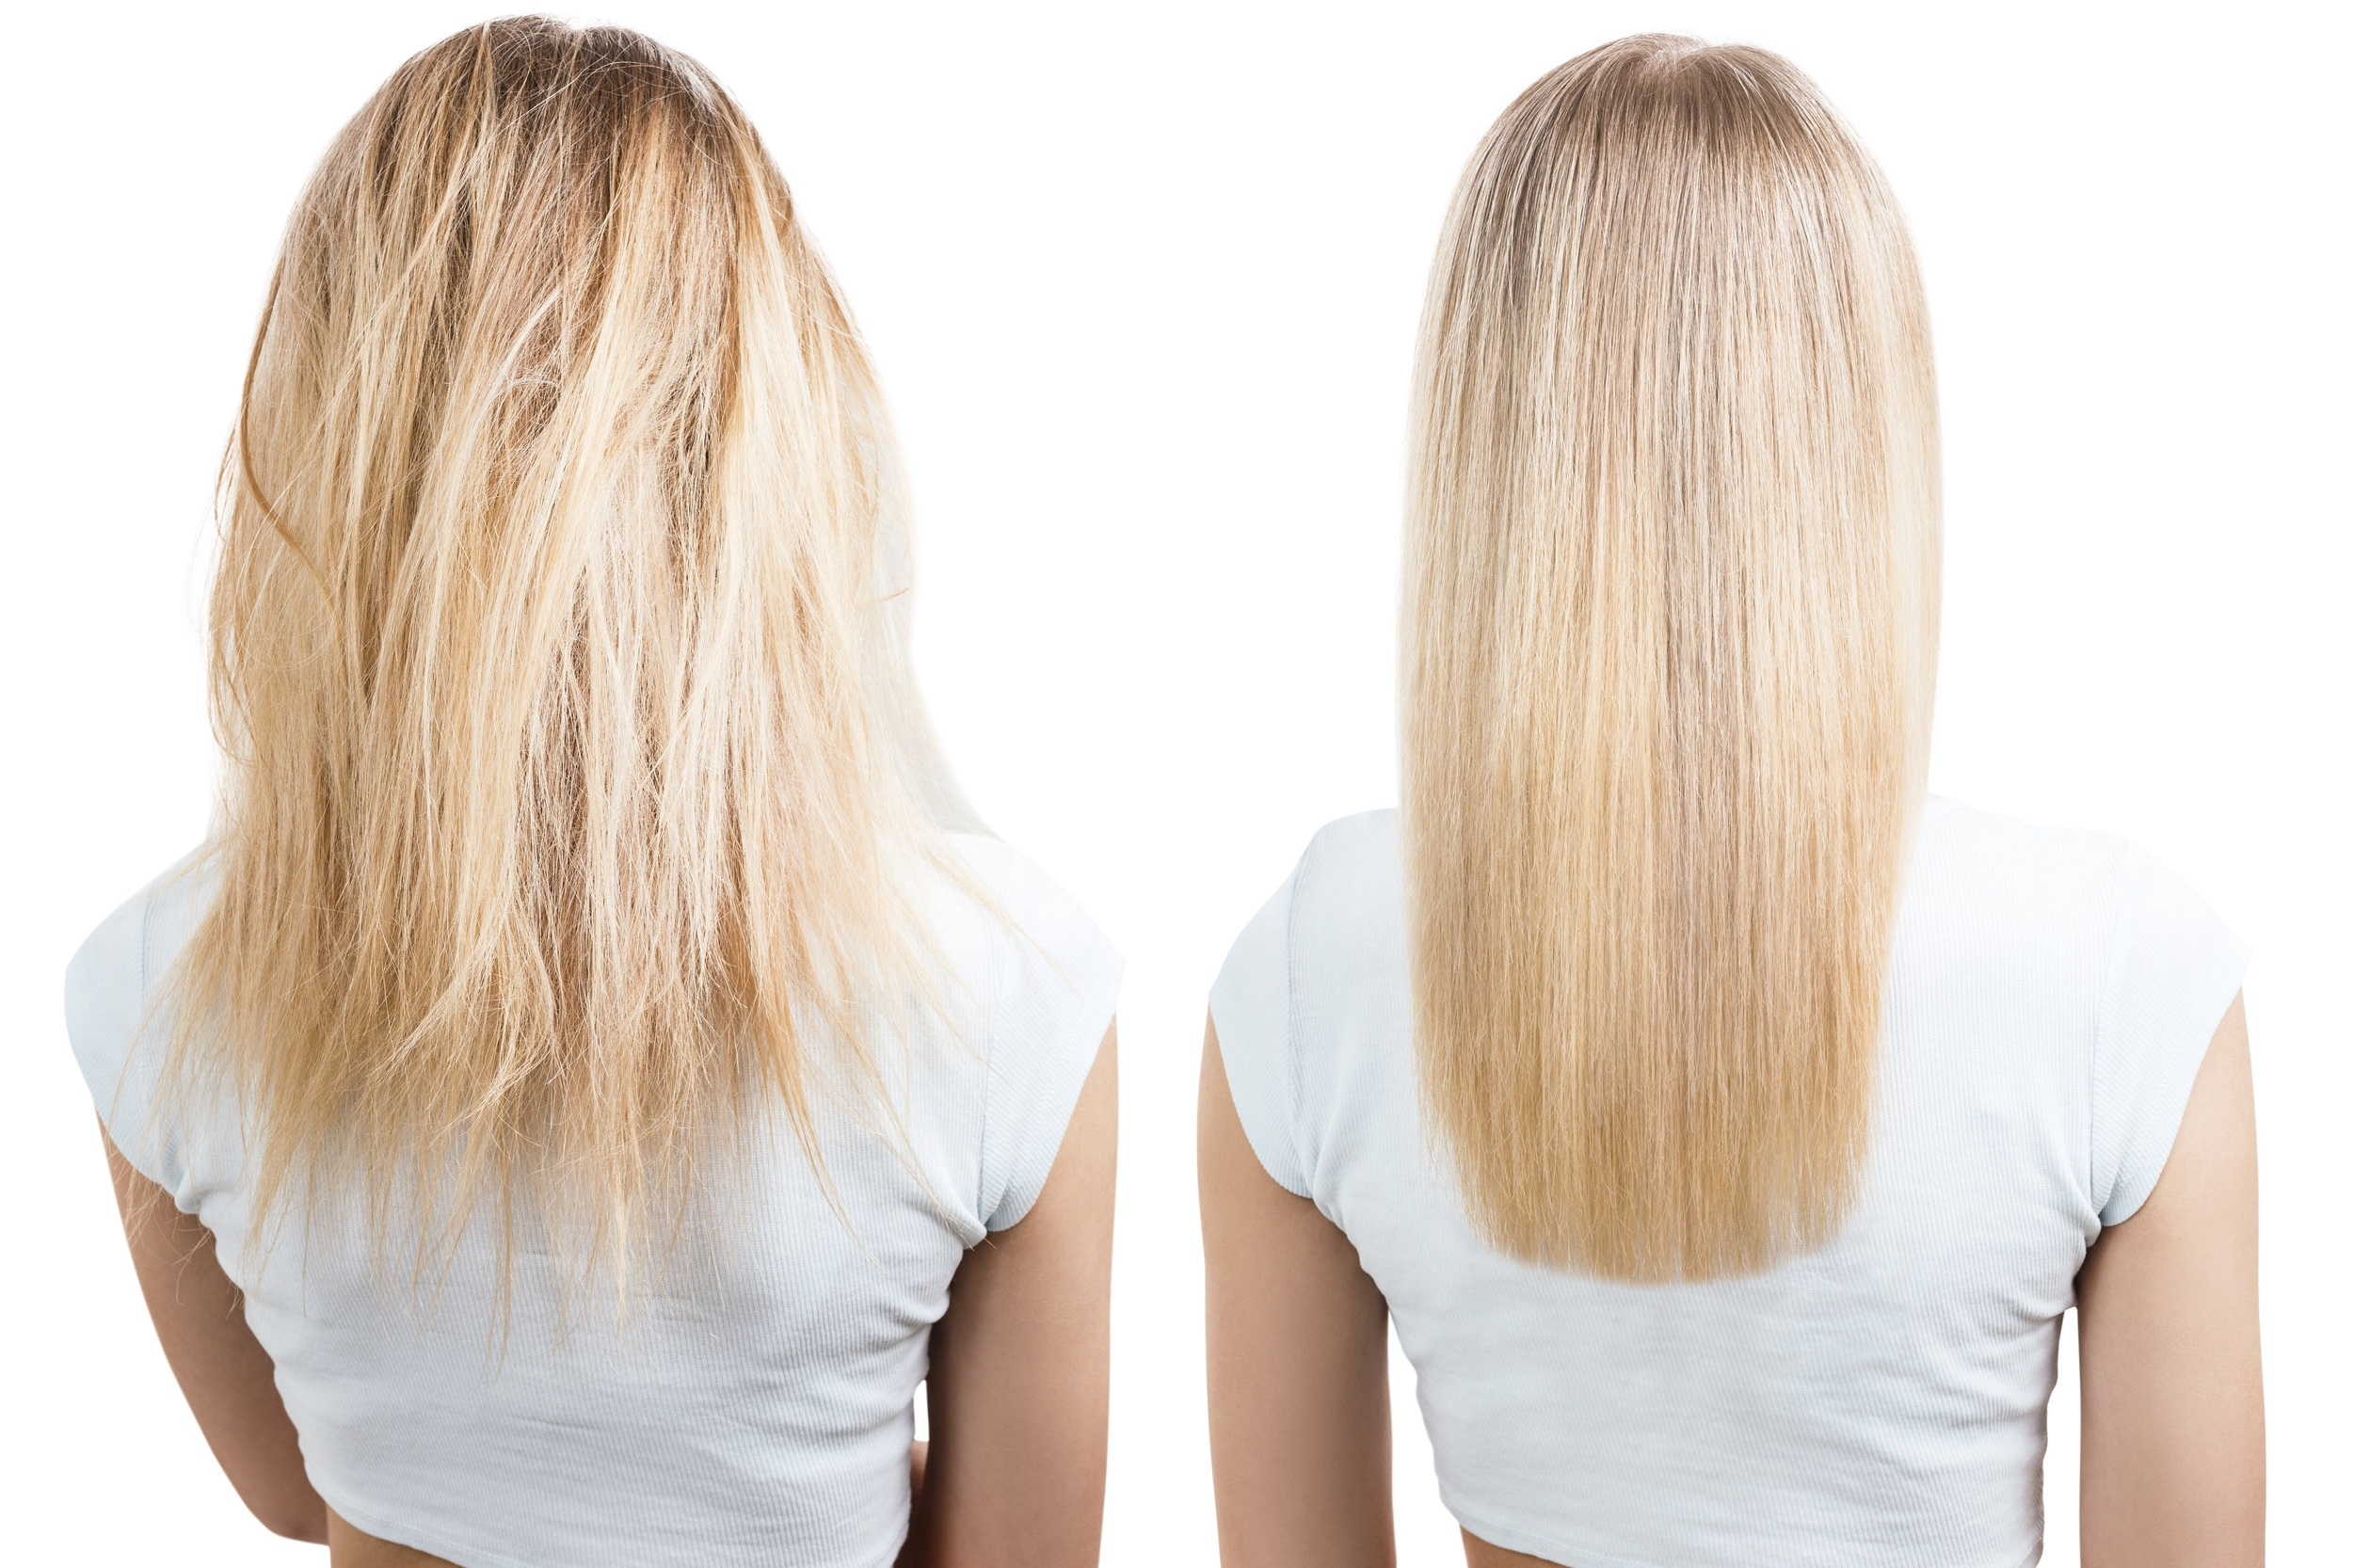 """Extensions - Add the length and volume you've been dreaming of with hair extensions. Our hair coaches will create a service that is personalized to you. You'll have people asking, """"What did you do?"""" Your hair looks amazing yet people will never know you have extension."""